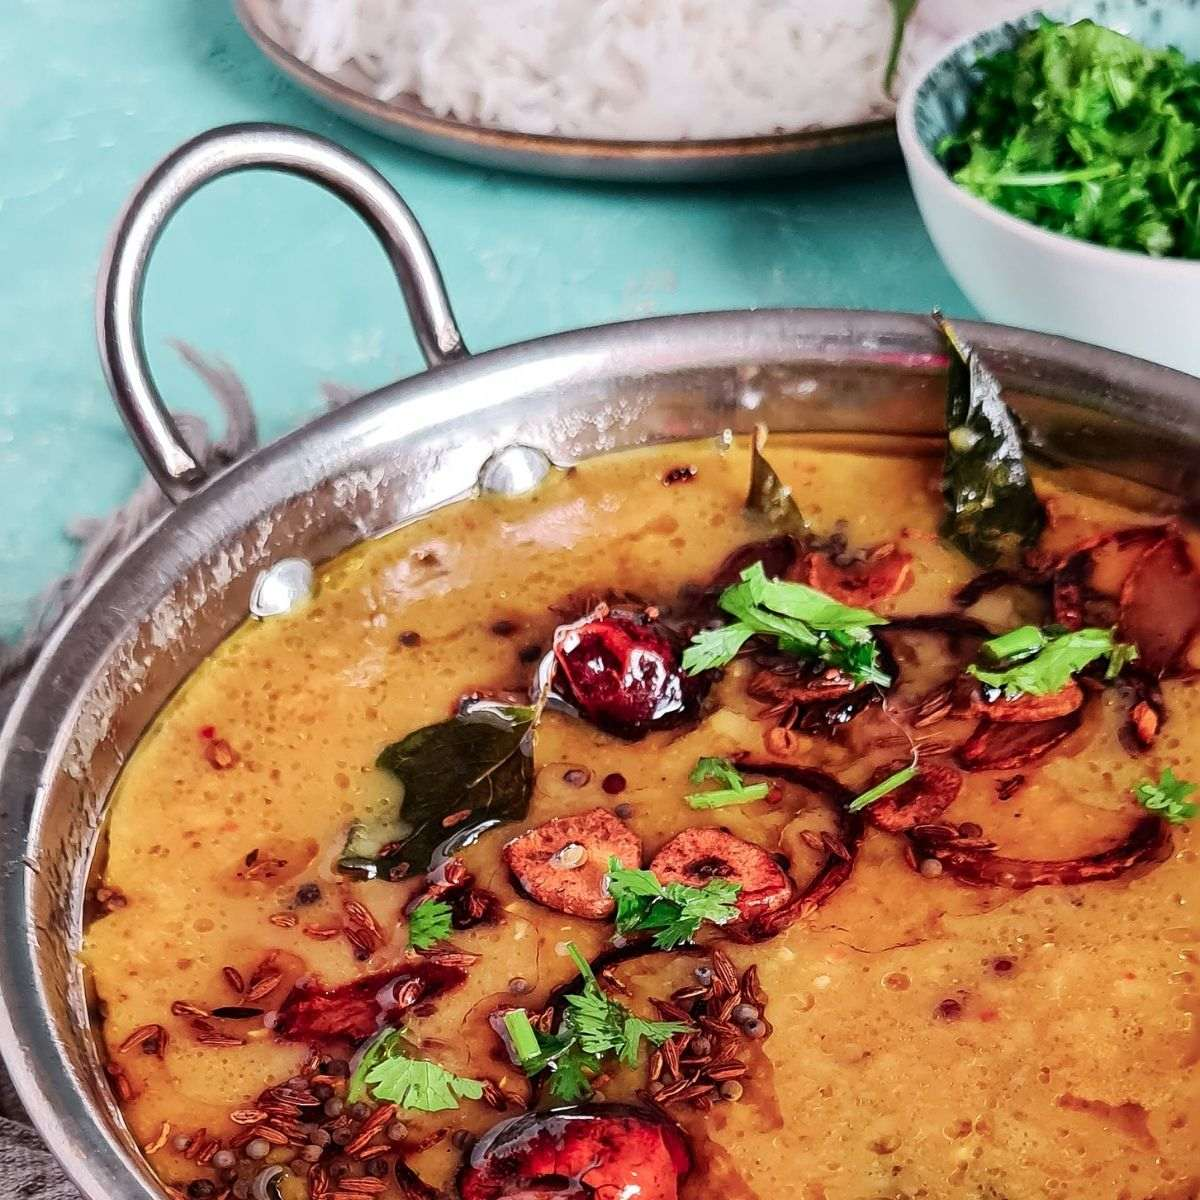 a view of khatti dal in a steel bowl with some rice and coriander show from the side.